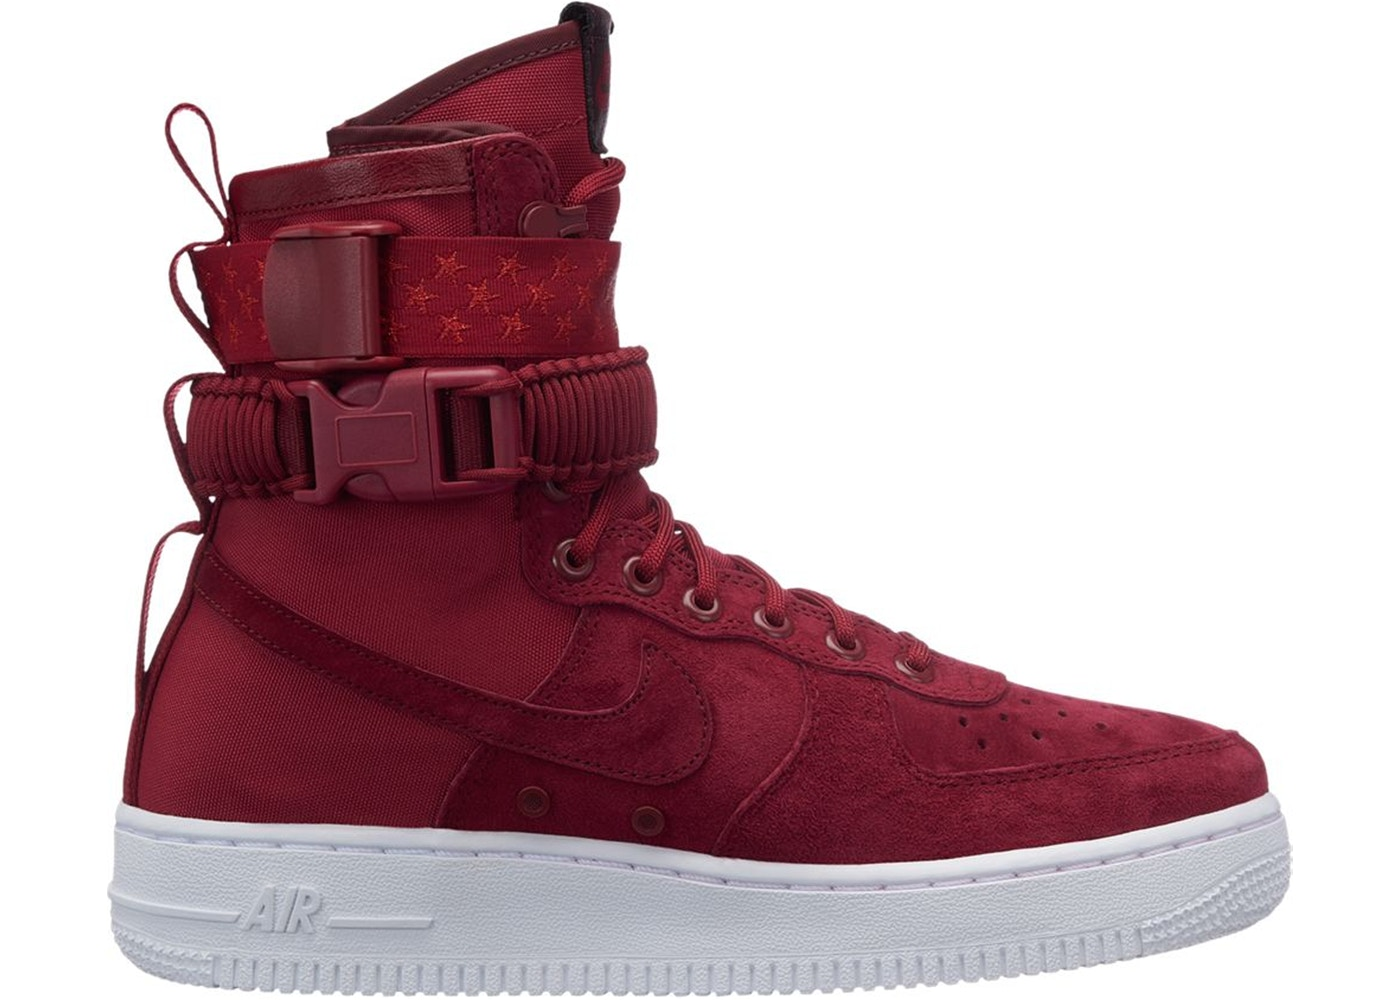 0c0d47d7 Sell. or Ask. Size: 11W. View All Bids. SF Air Force 1 High Red ...